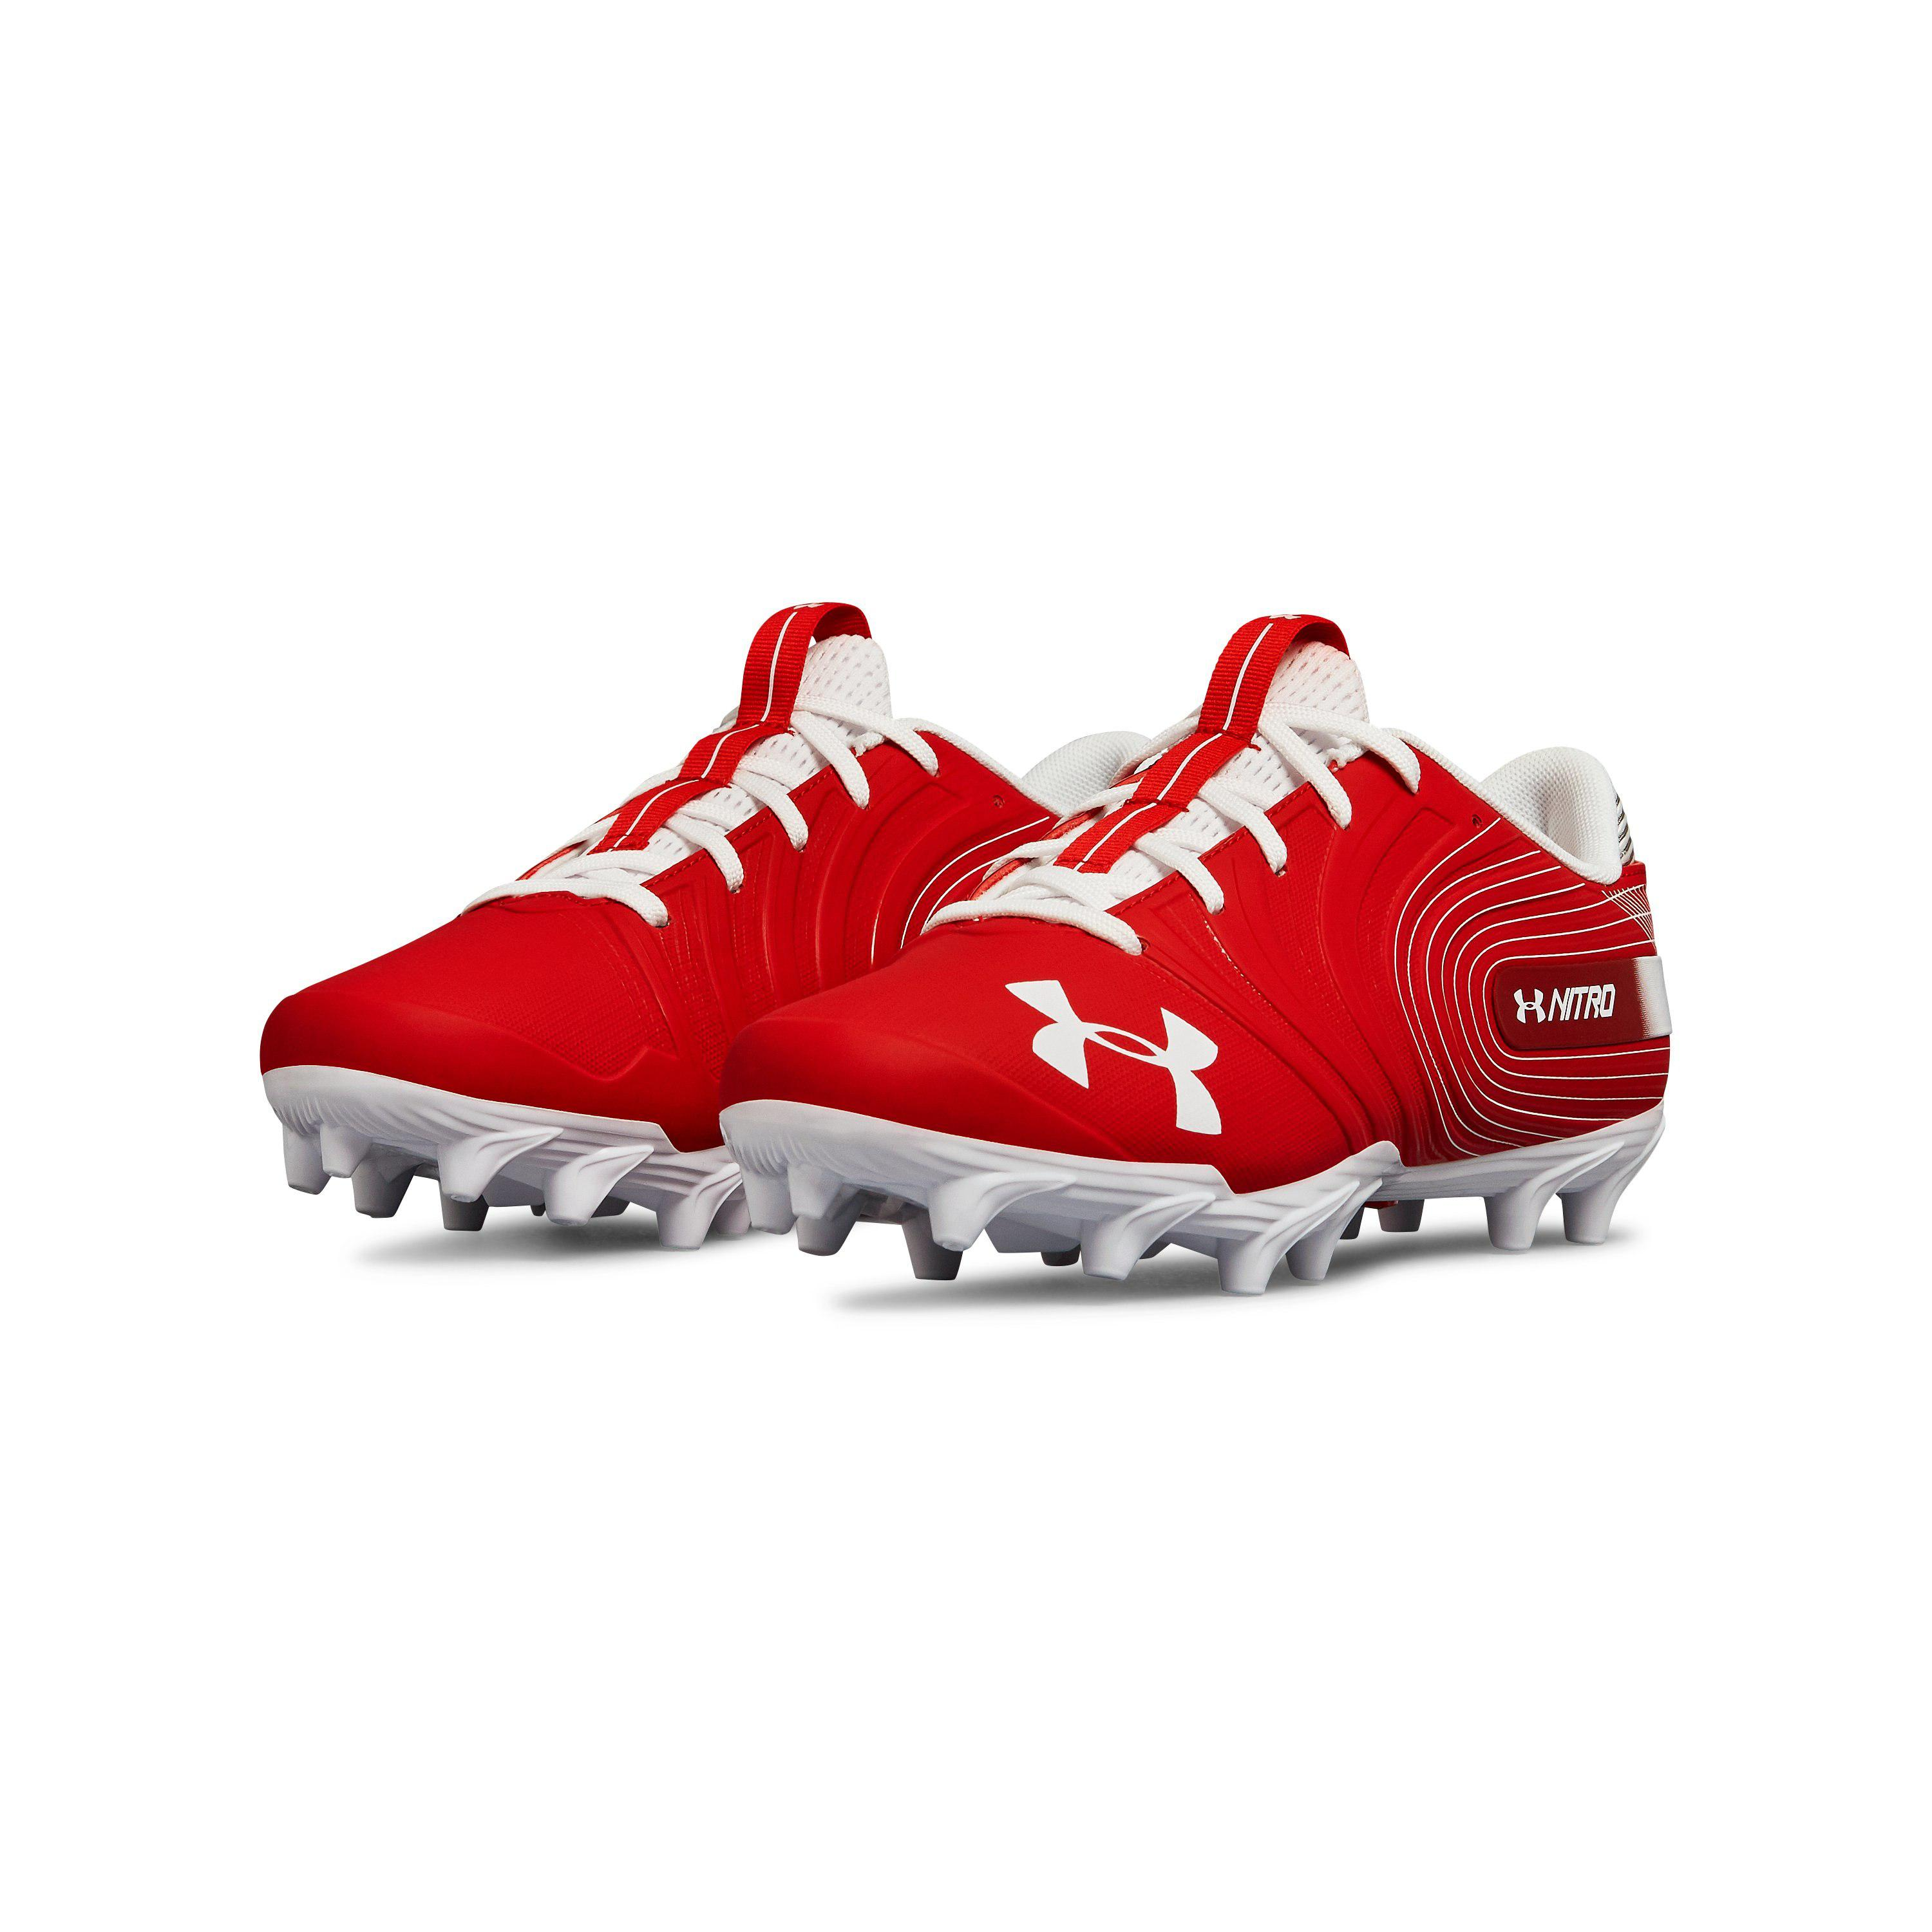 14903e4a48da Under Armour Men's Ua Nitro Low Mc Football Cleats in Red for Men - Lyst